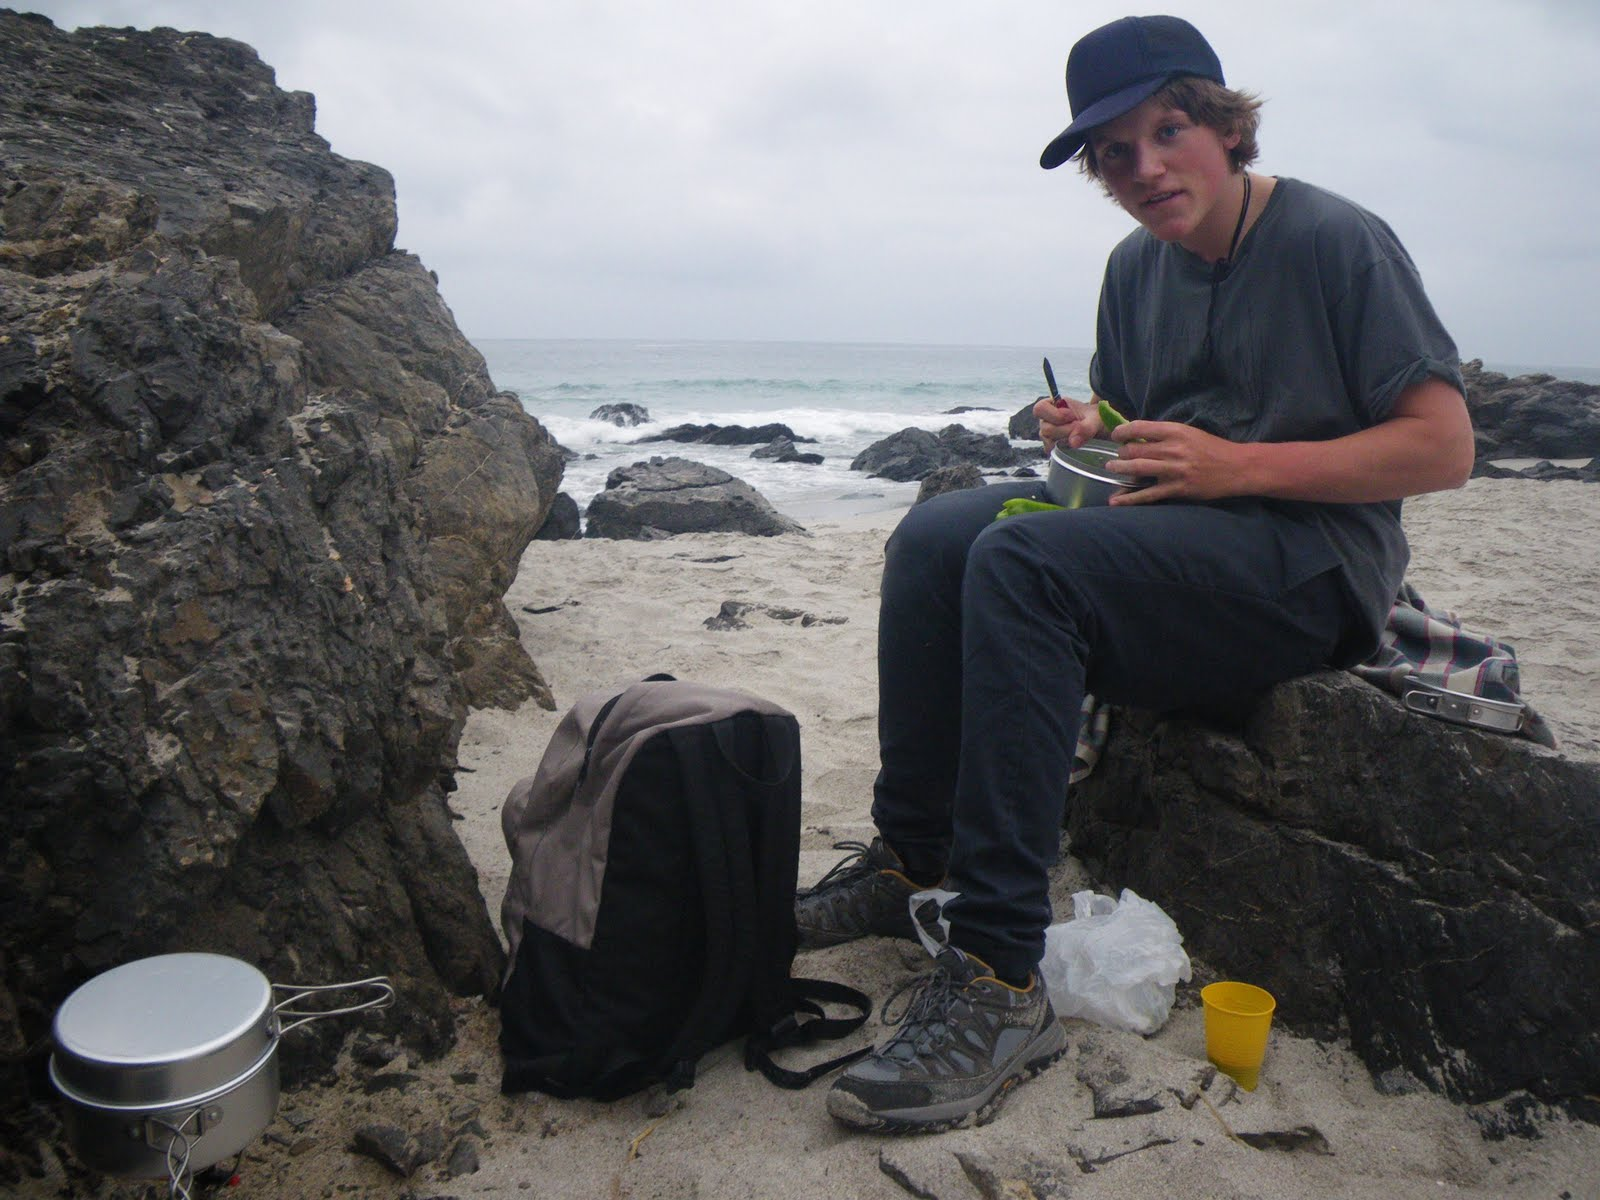 Cooking at the beach in the north of Chile